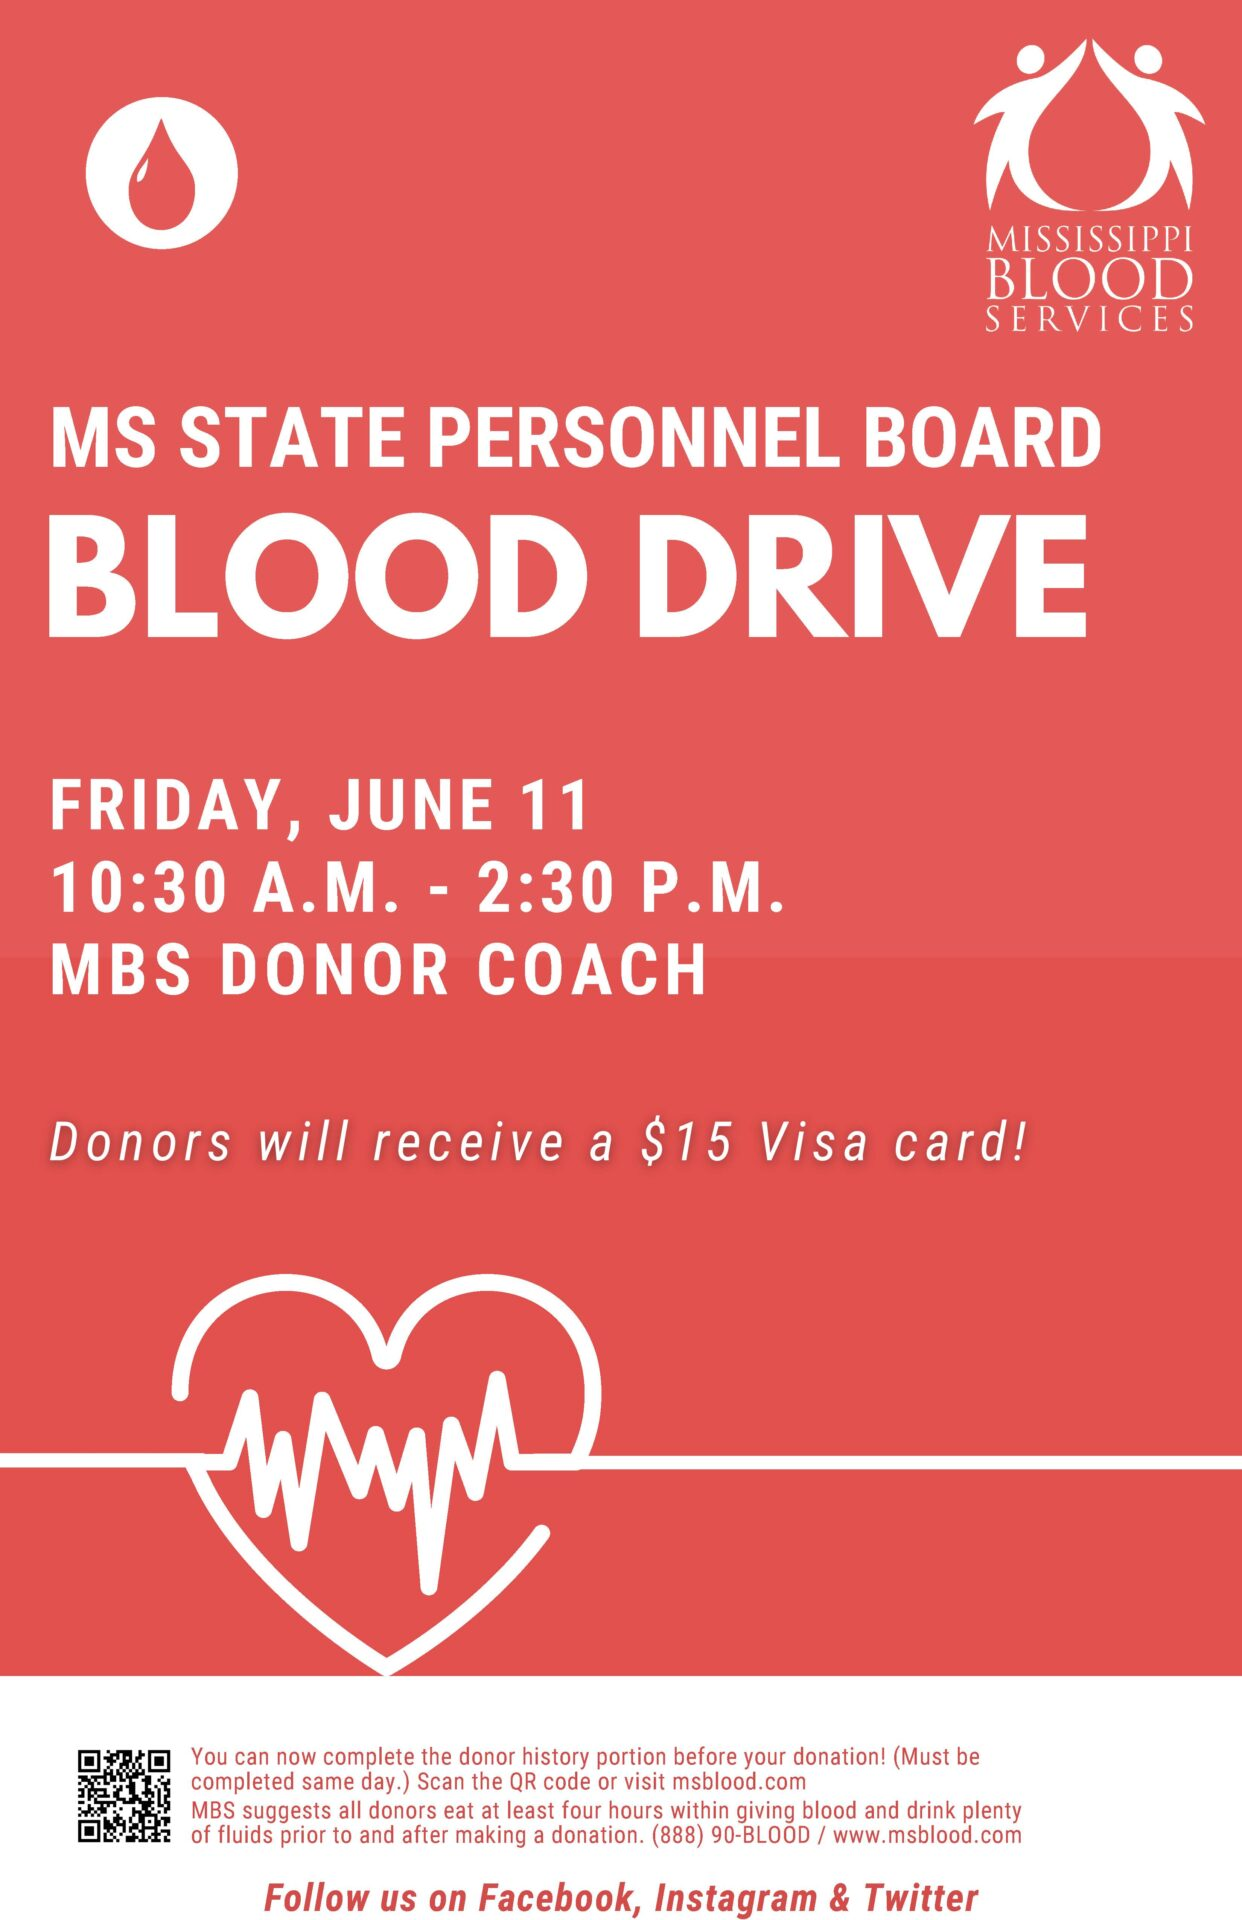 MS State Personnel Board Blood Drive